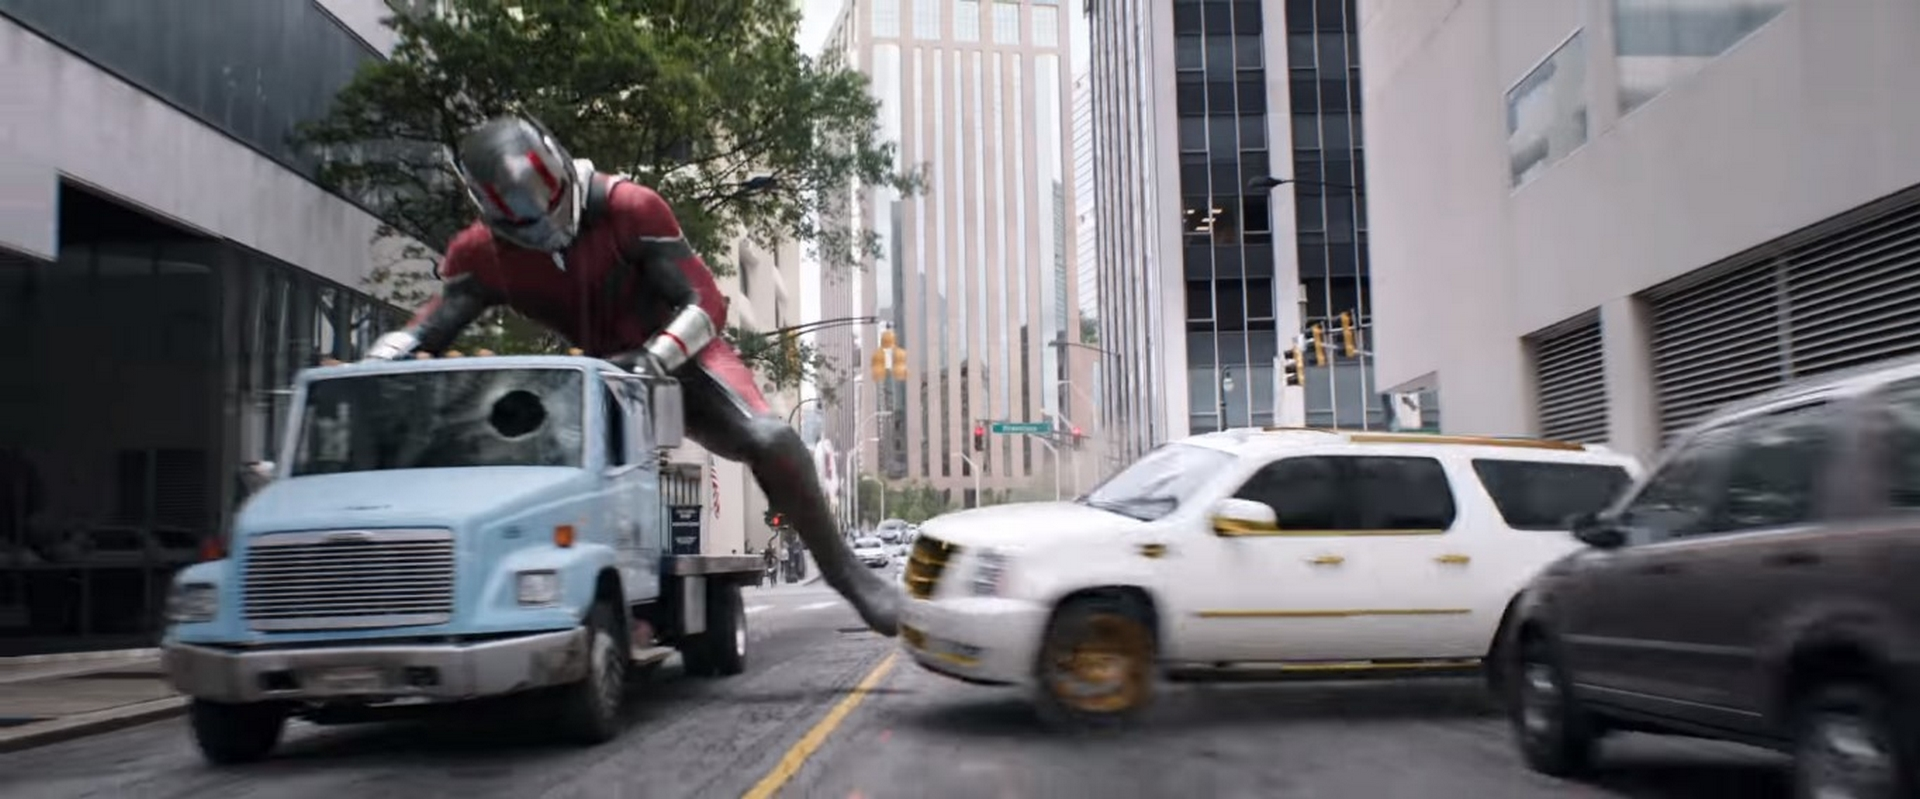 ART OF THE CUT with Ant-Man and the Wasp's Craig Wood, ACE 26